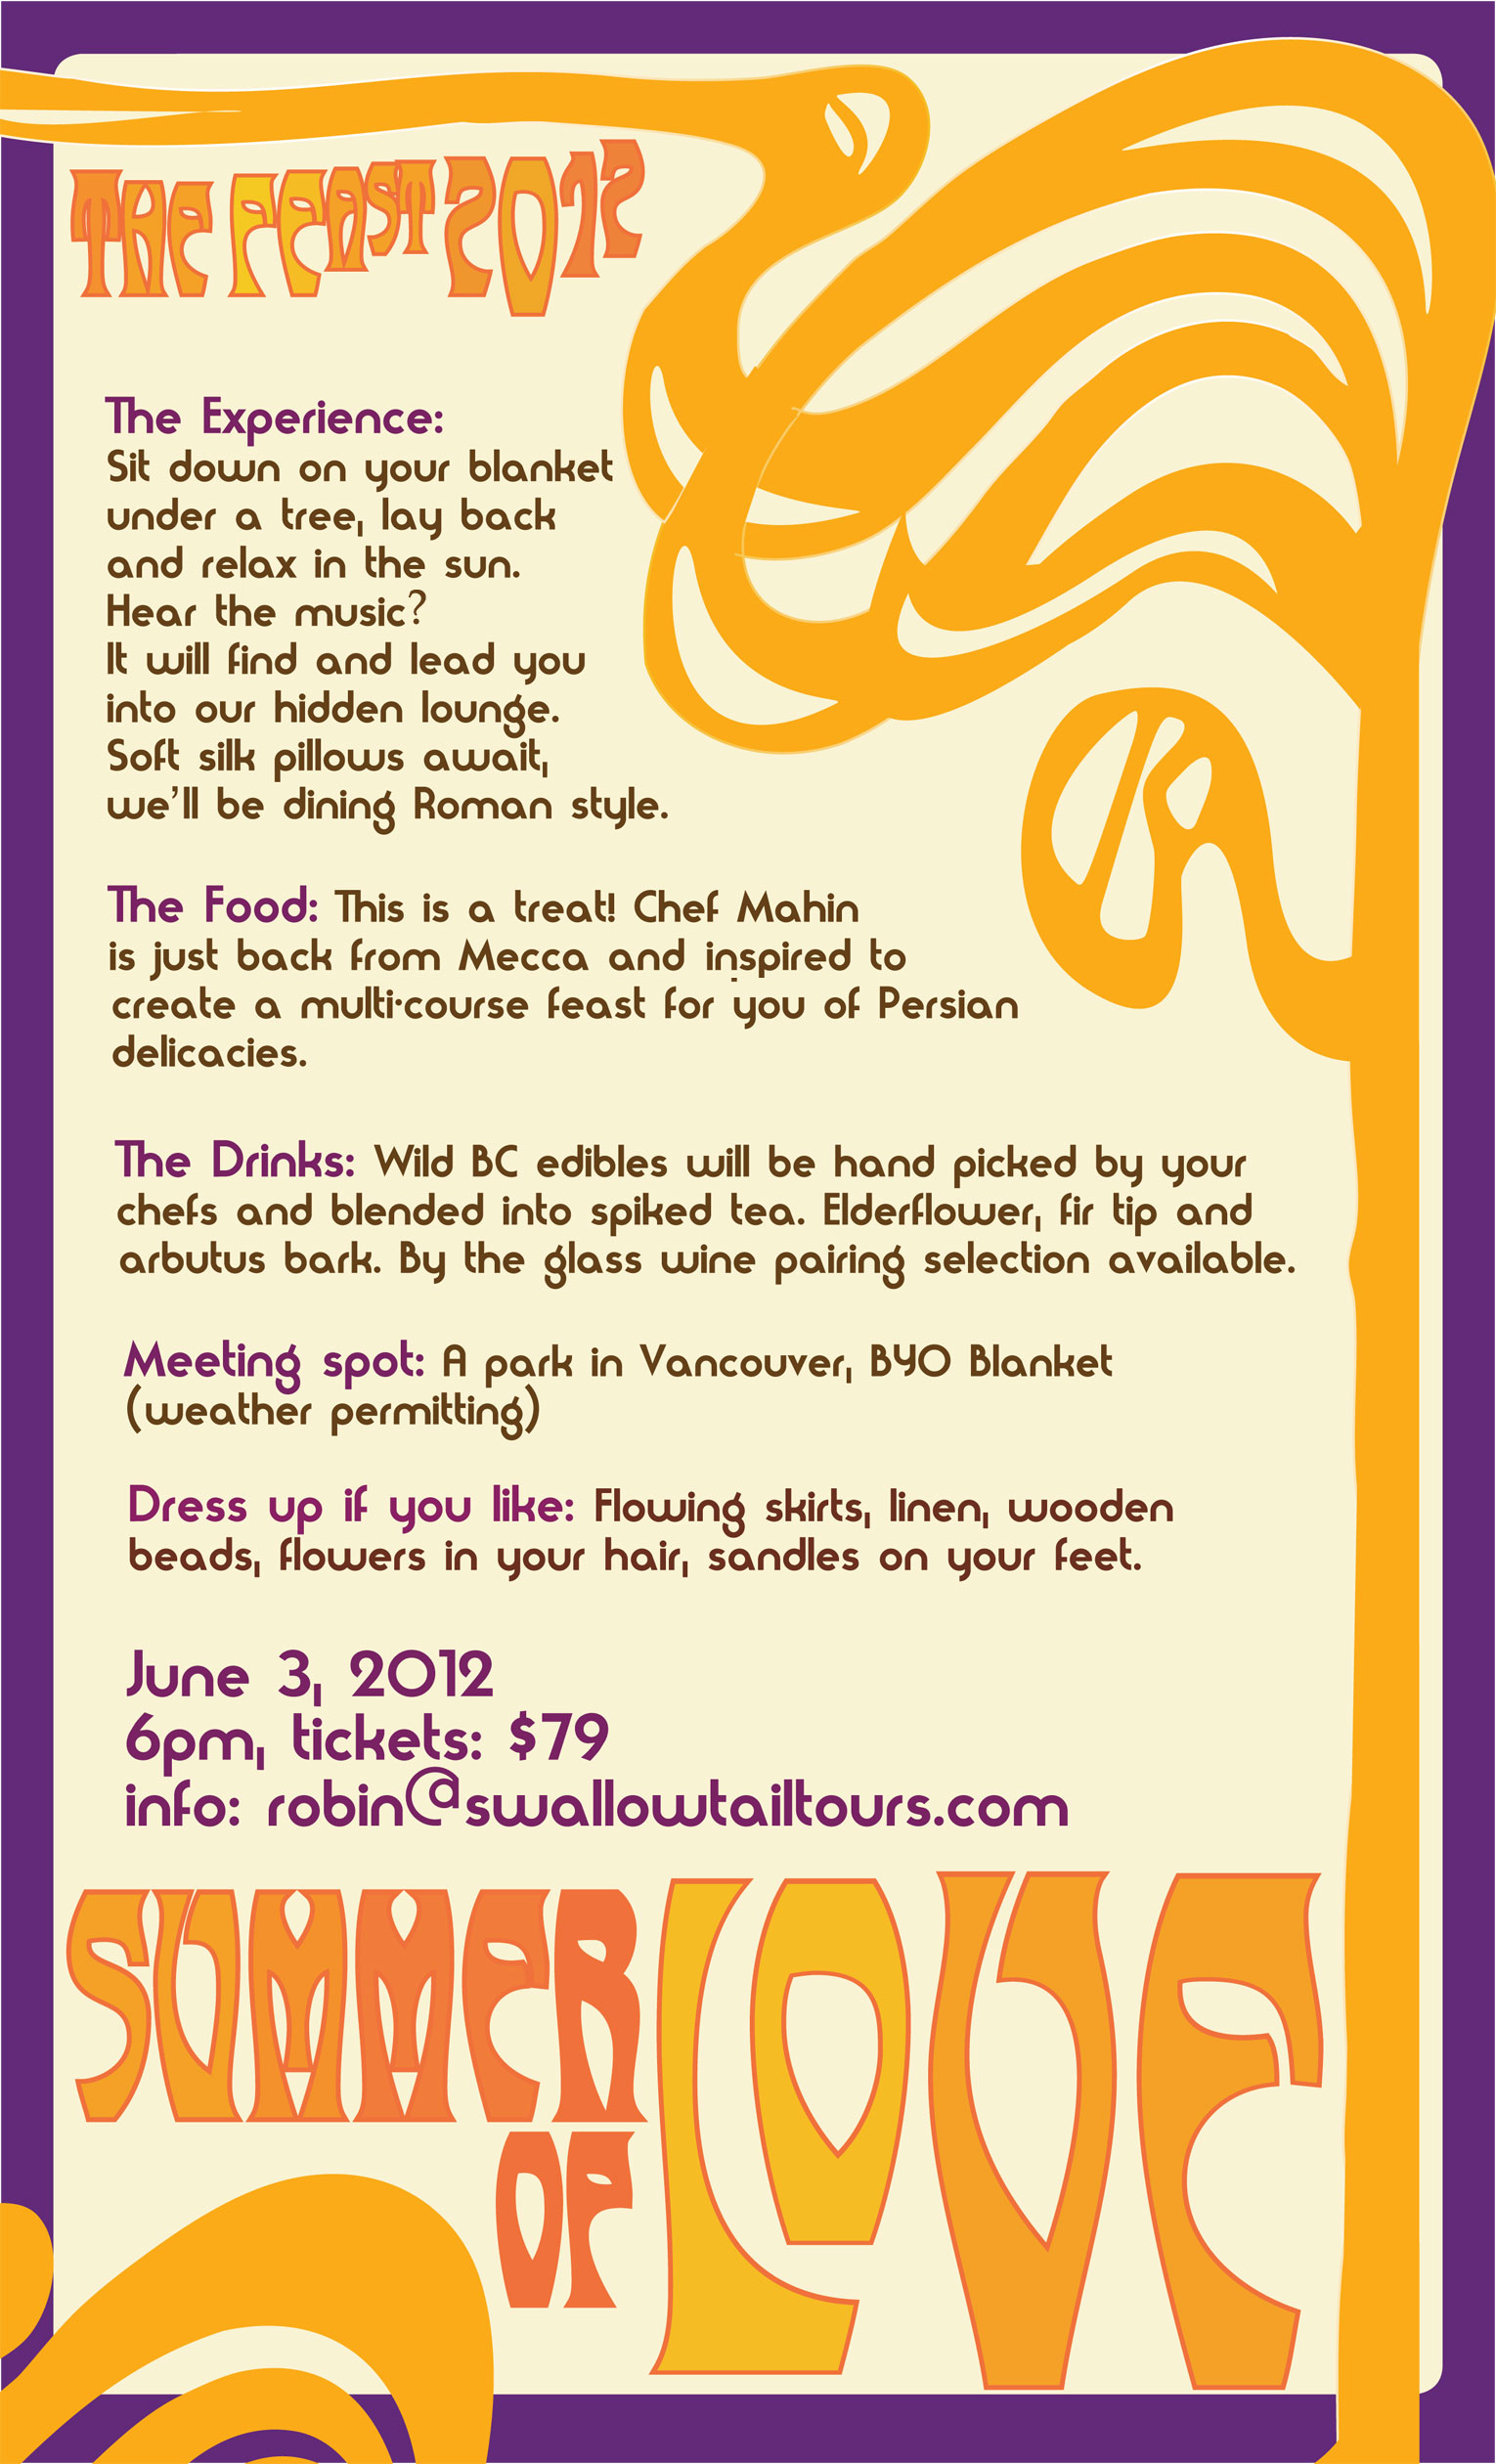 Summer of Love - Pop-up Restaurant Details